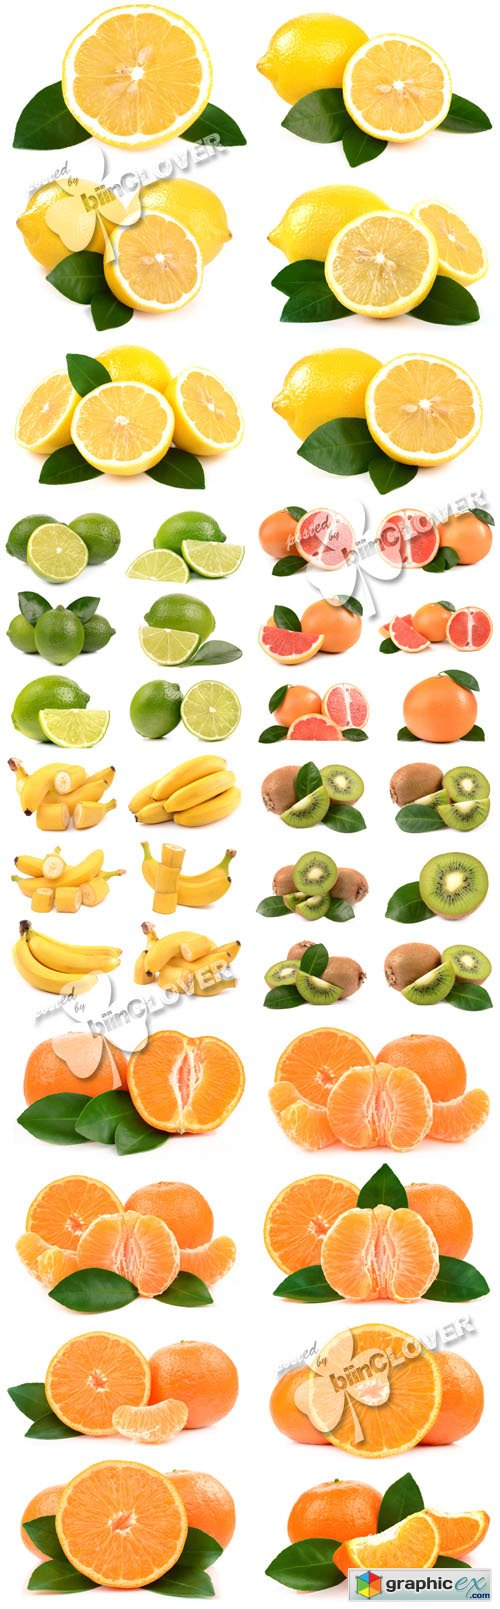 Fruits and citrus 0440